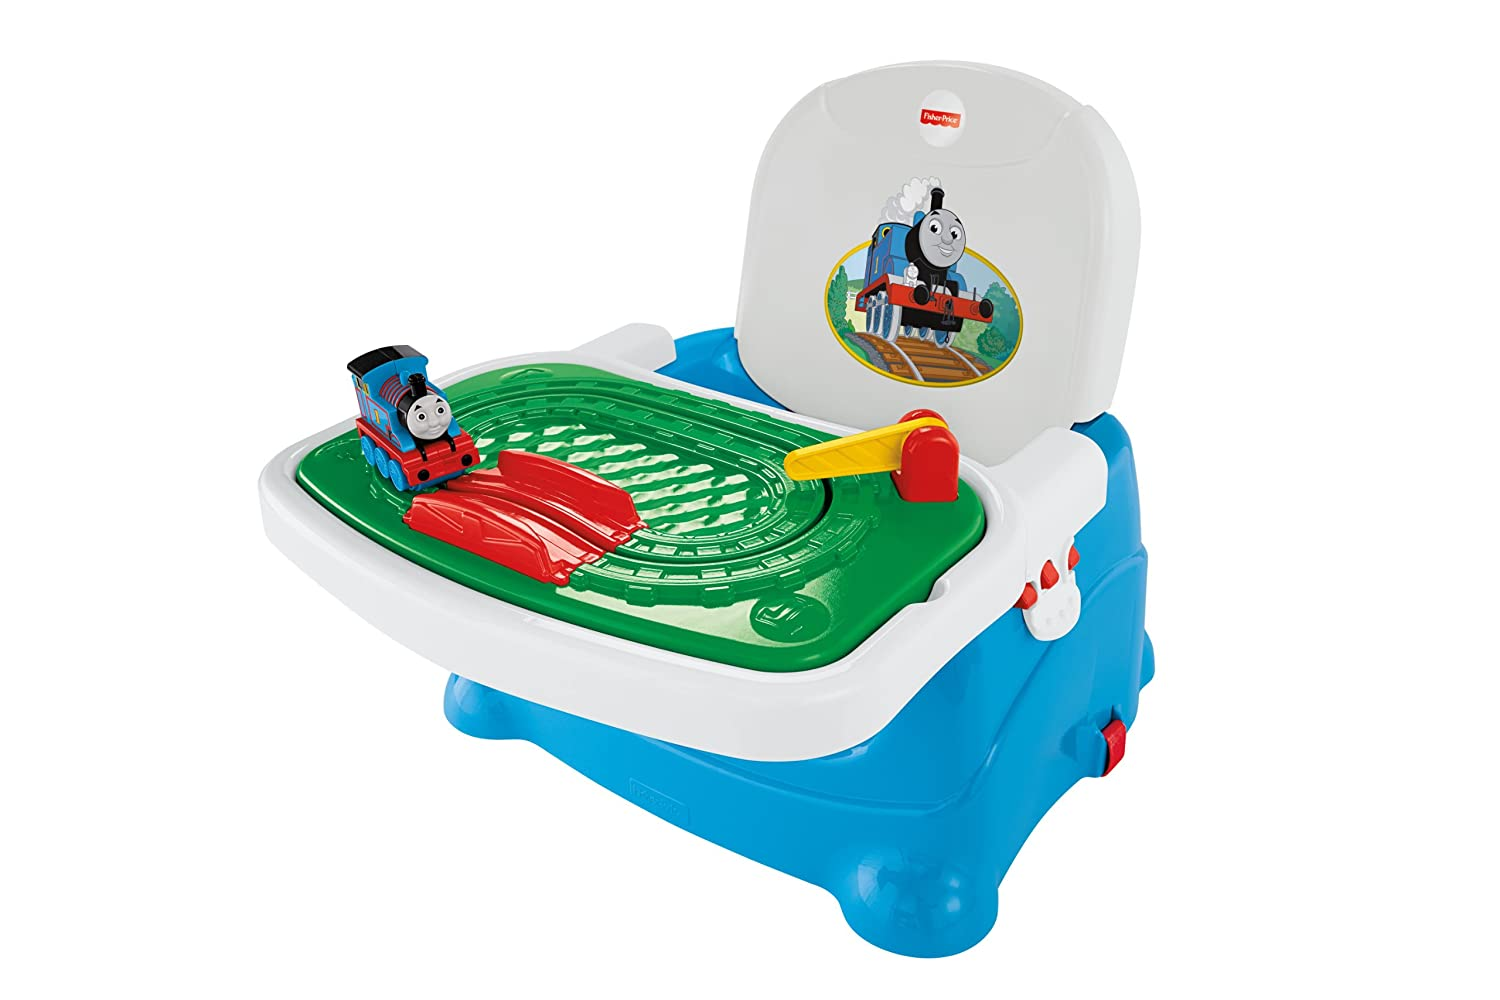 Superbe Amazon.com : Fisher Price Thomas U0026 Friends, Thomas Tray Play Booster : Chair  Booster Seats : Baby